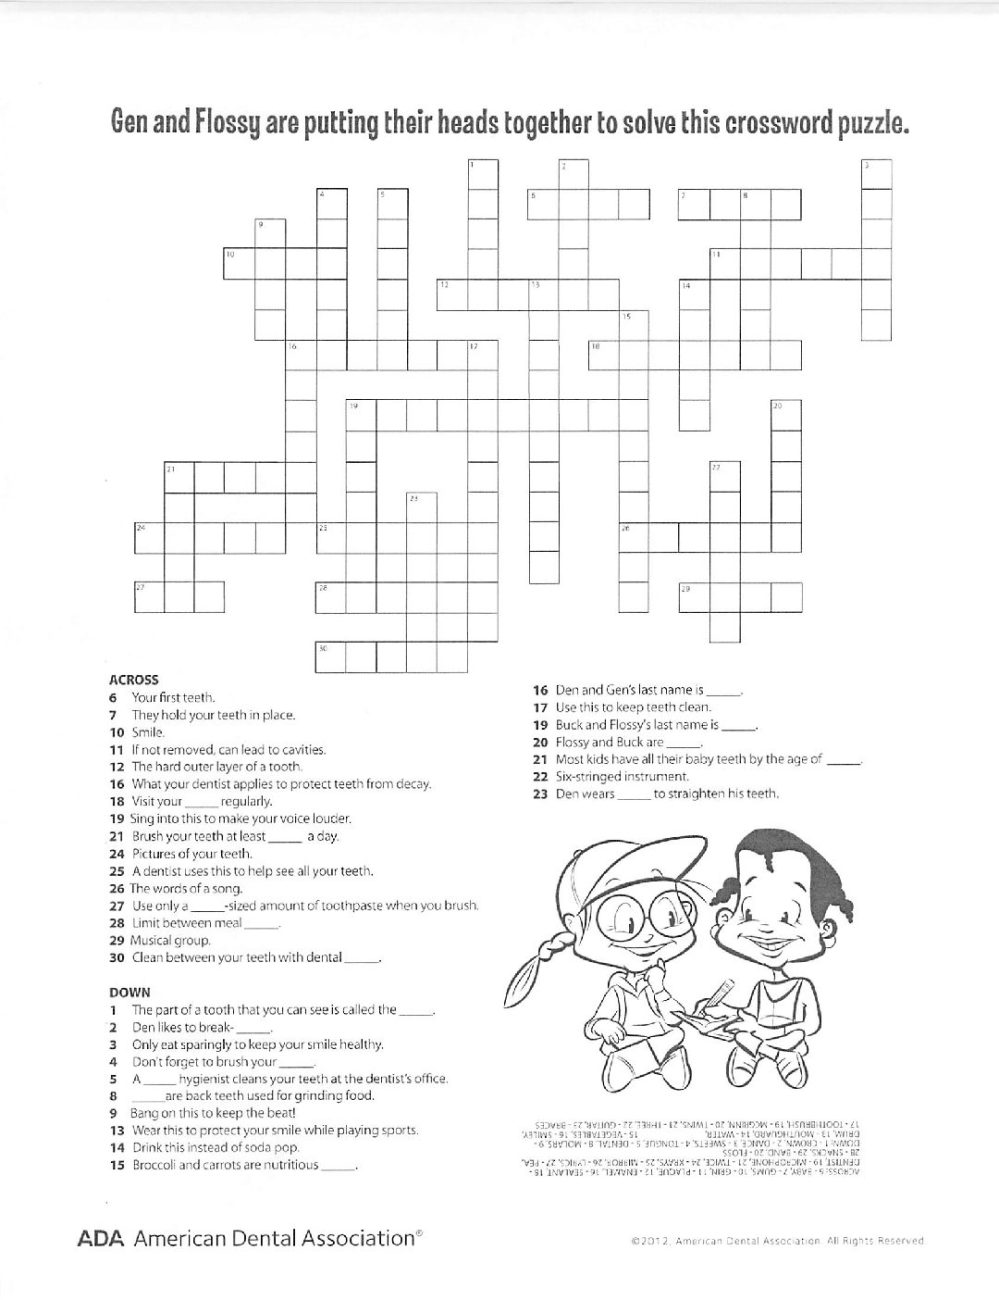 medium resolution of ada crossword pdf